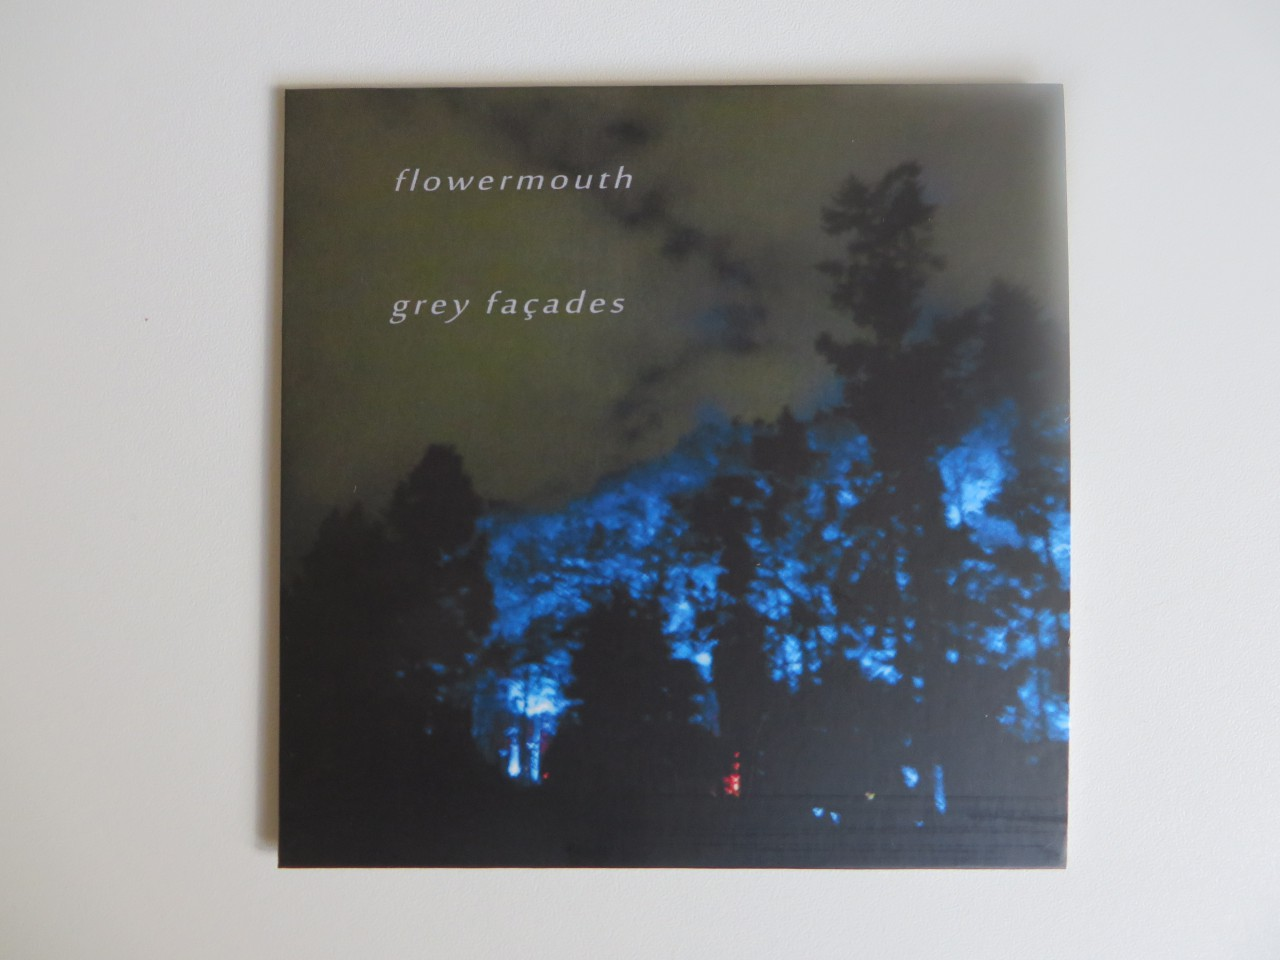 New flowermouth album: Grey façades